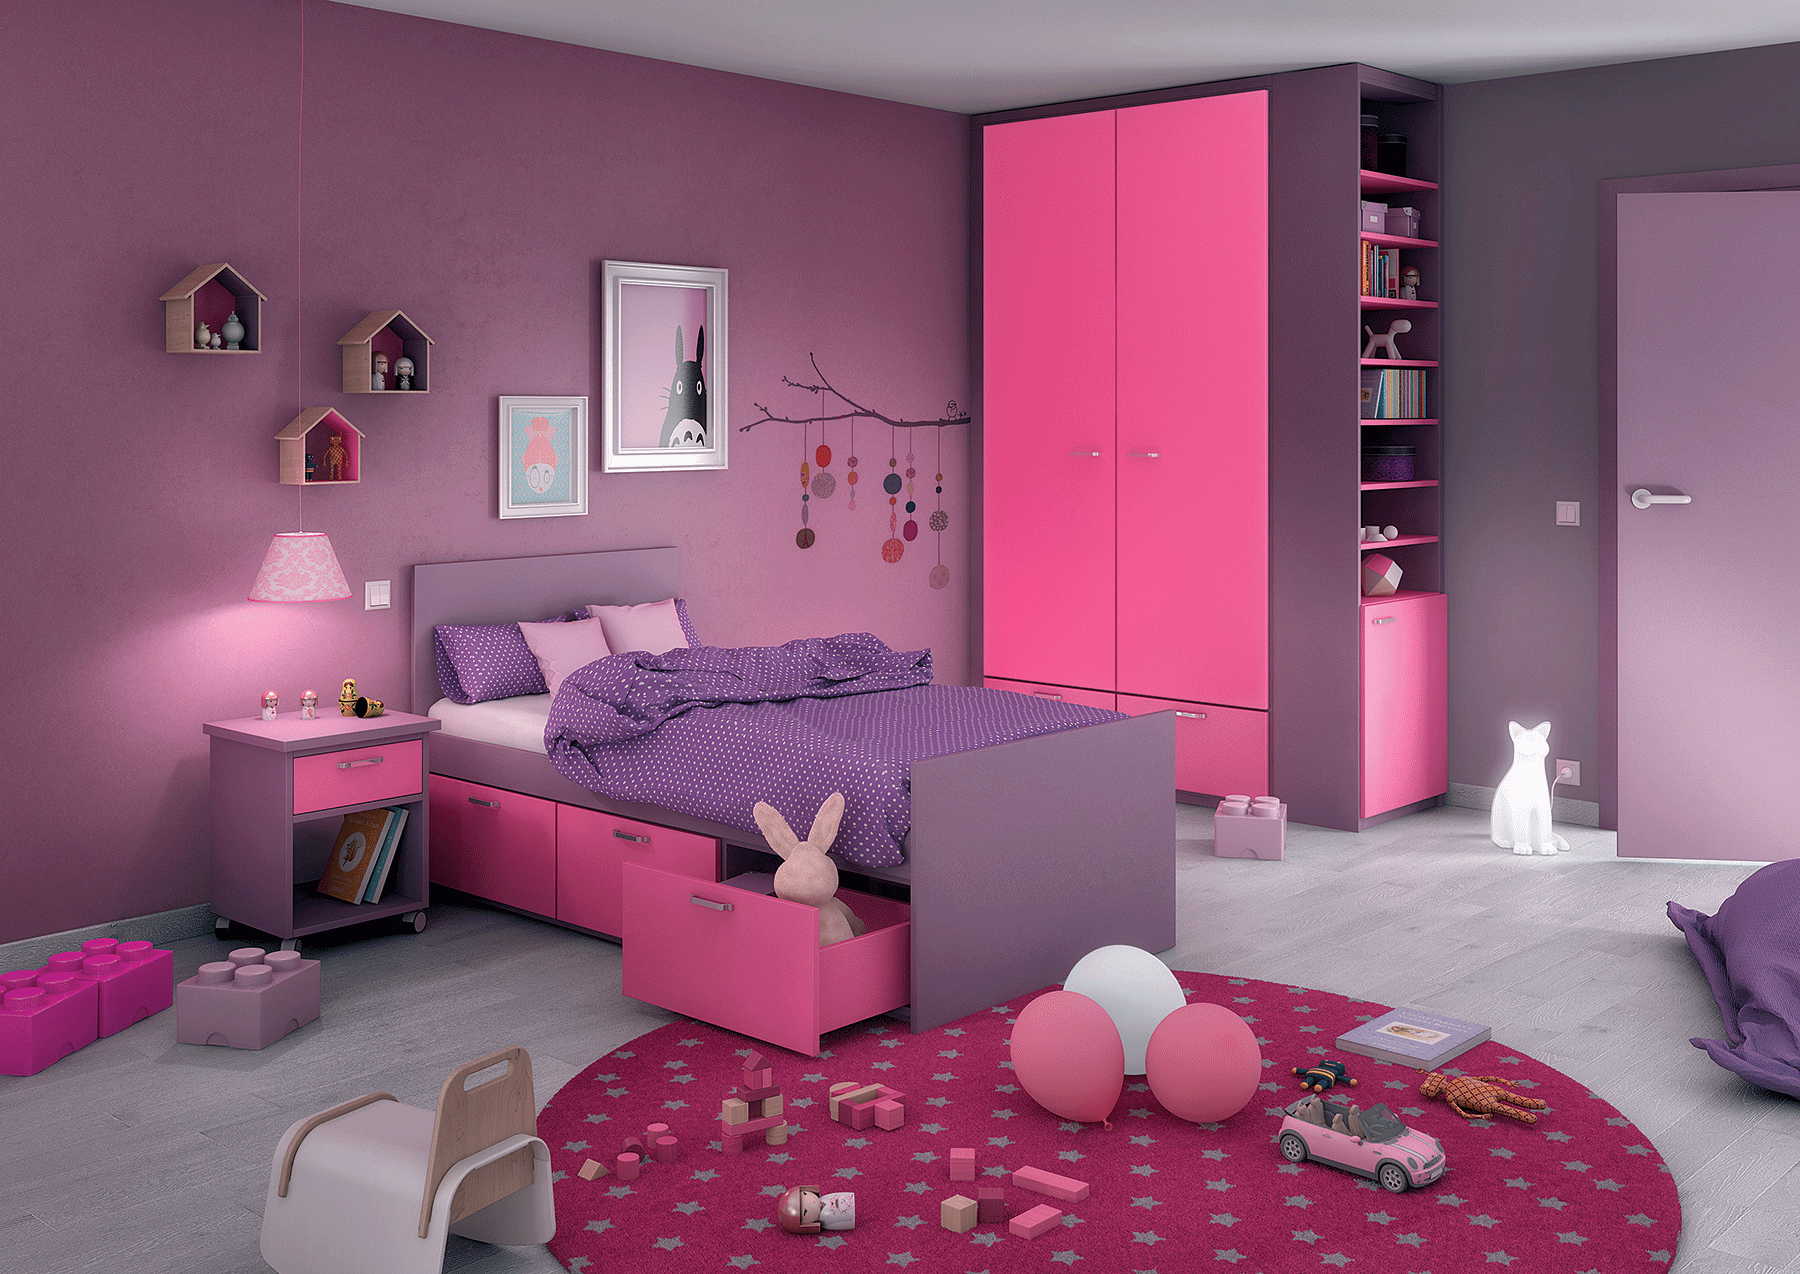 chambre petite fille princesse. Black Bedroom Furniture Sets. Home Design Ideas